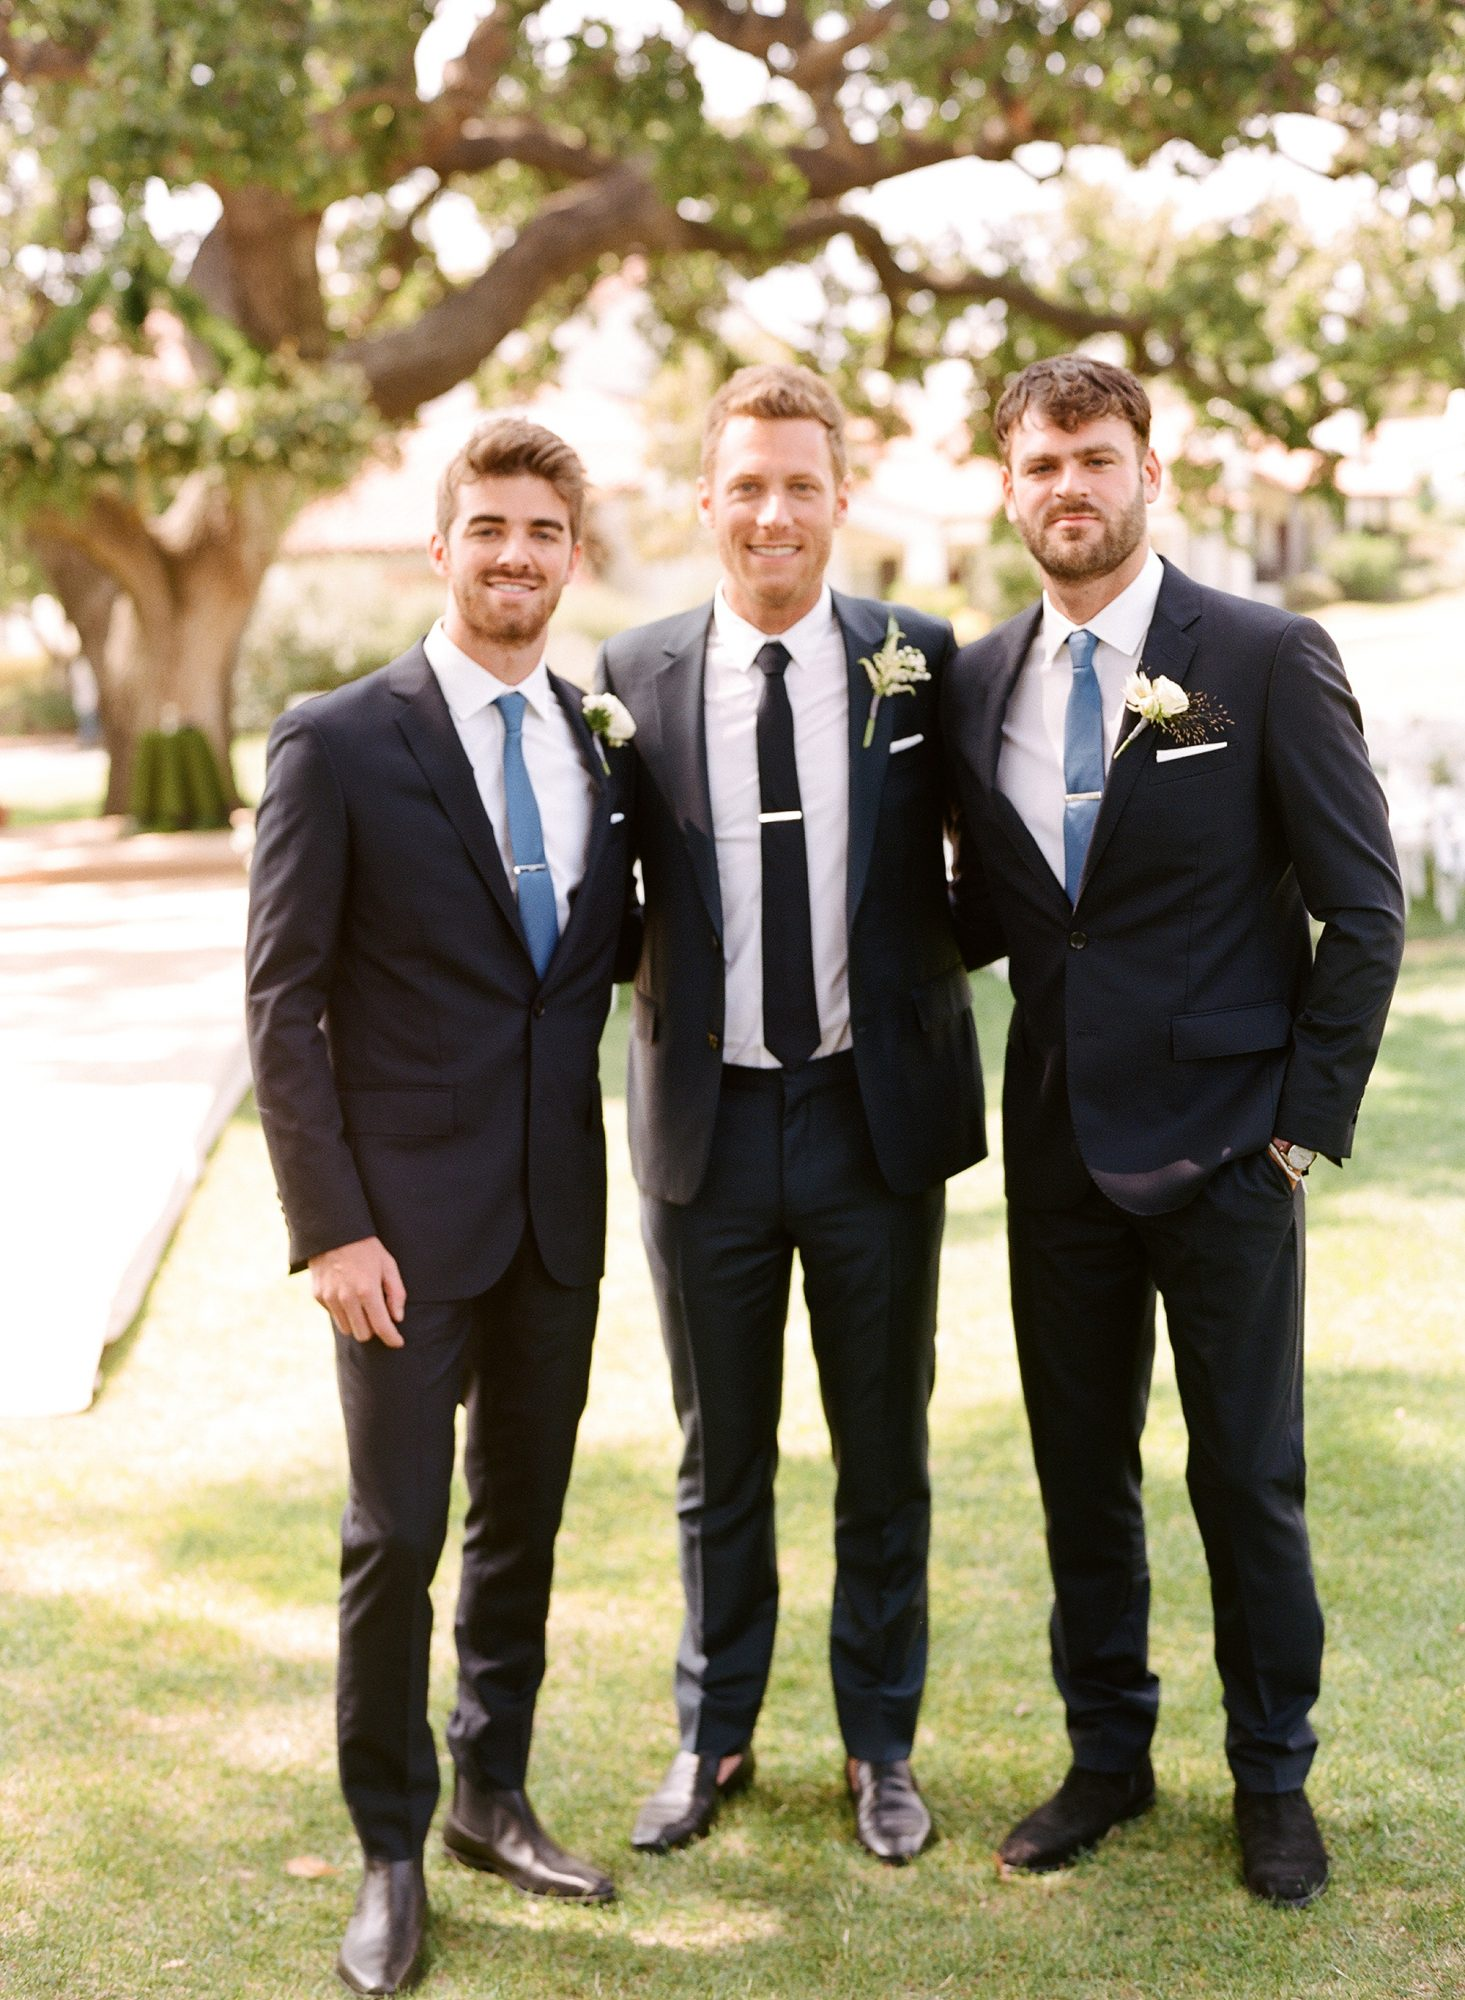 ashlie adam alpert wedding chainsmokers groomsmen